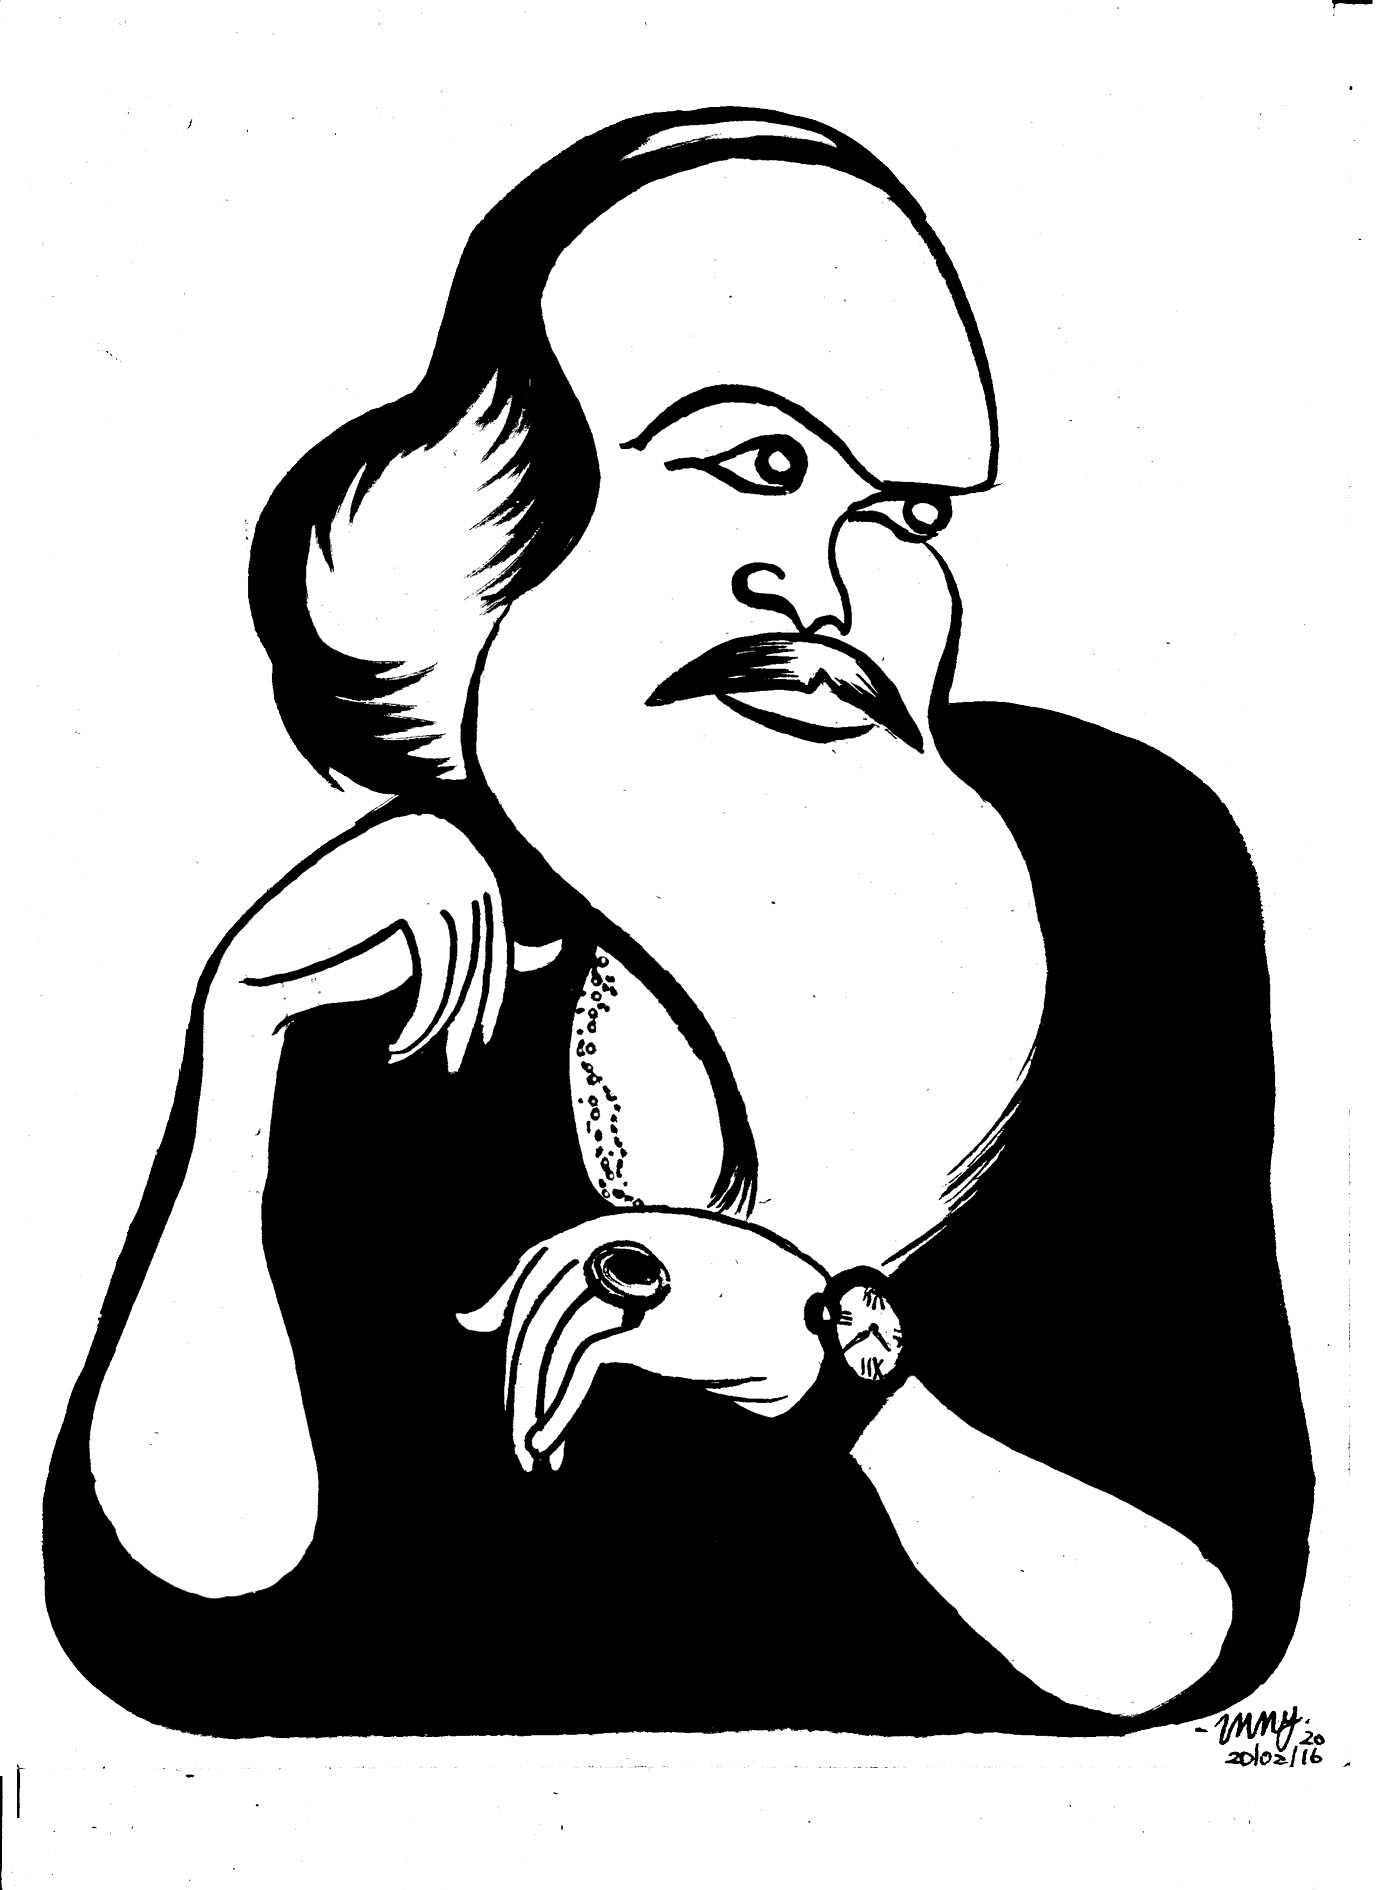 EP Unny's caricature of Aravindan.